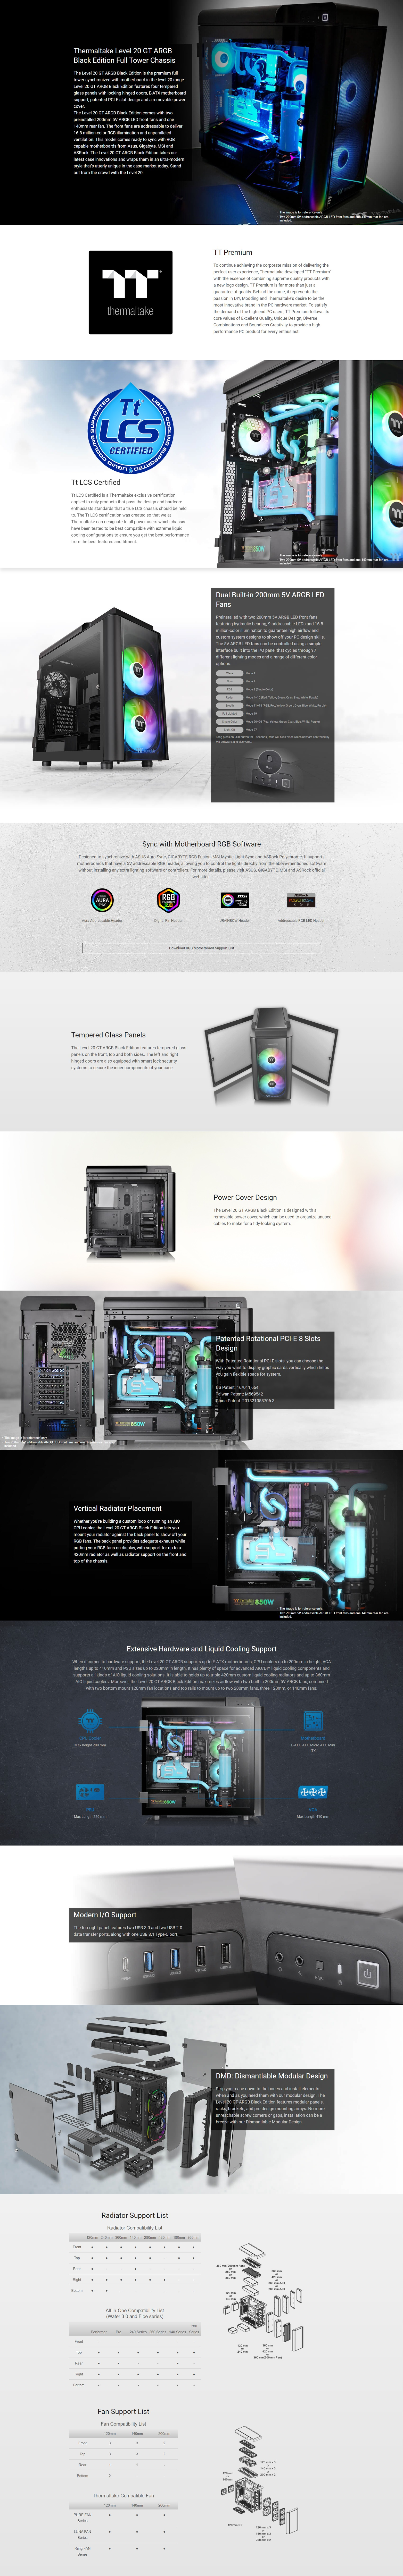 A large marketing image providing additional information about the product Thermaltake Level 20 GT ARGB Black Edition Full Tower Case - Additional alt info not provided